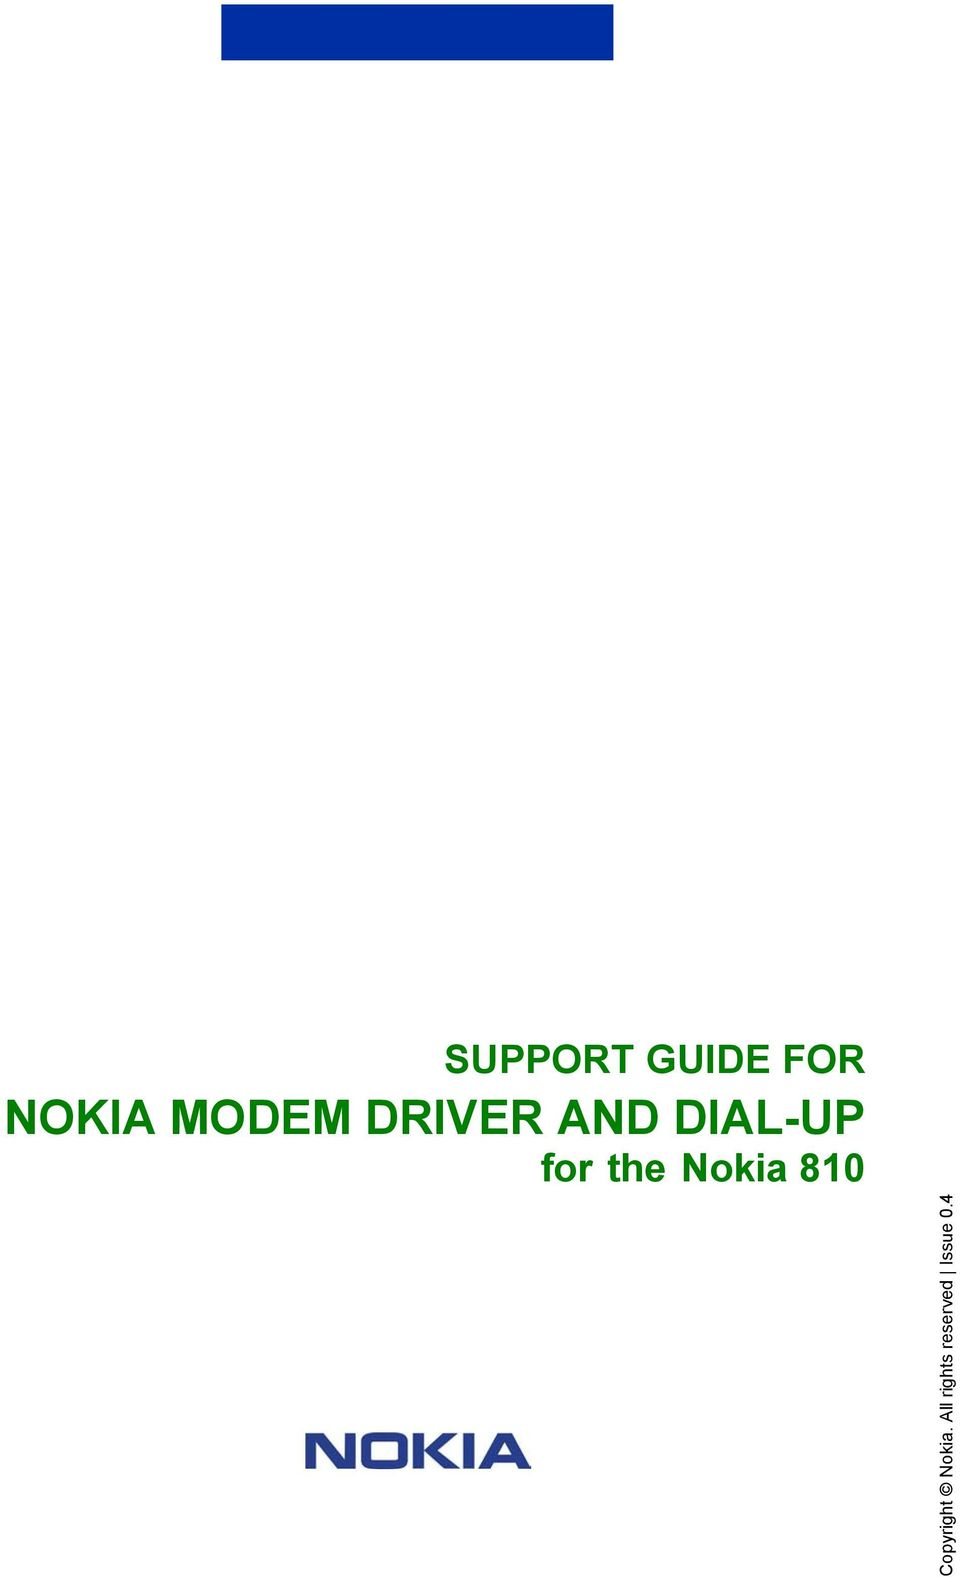 Support Guide For Nokia Modem Driver And Dial Up The 810 9300 Service Manual Copyright